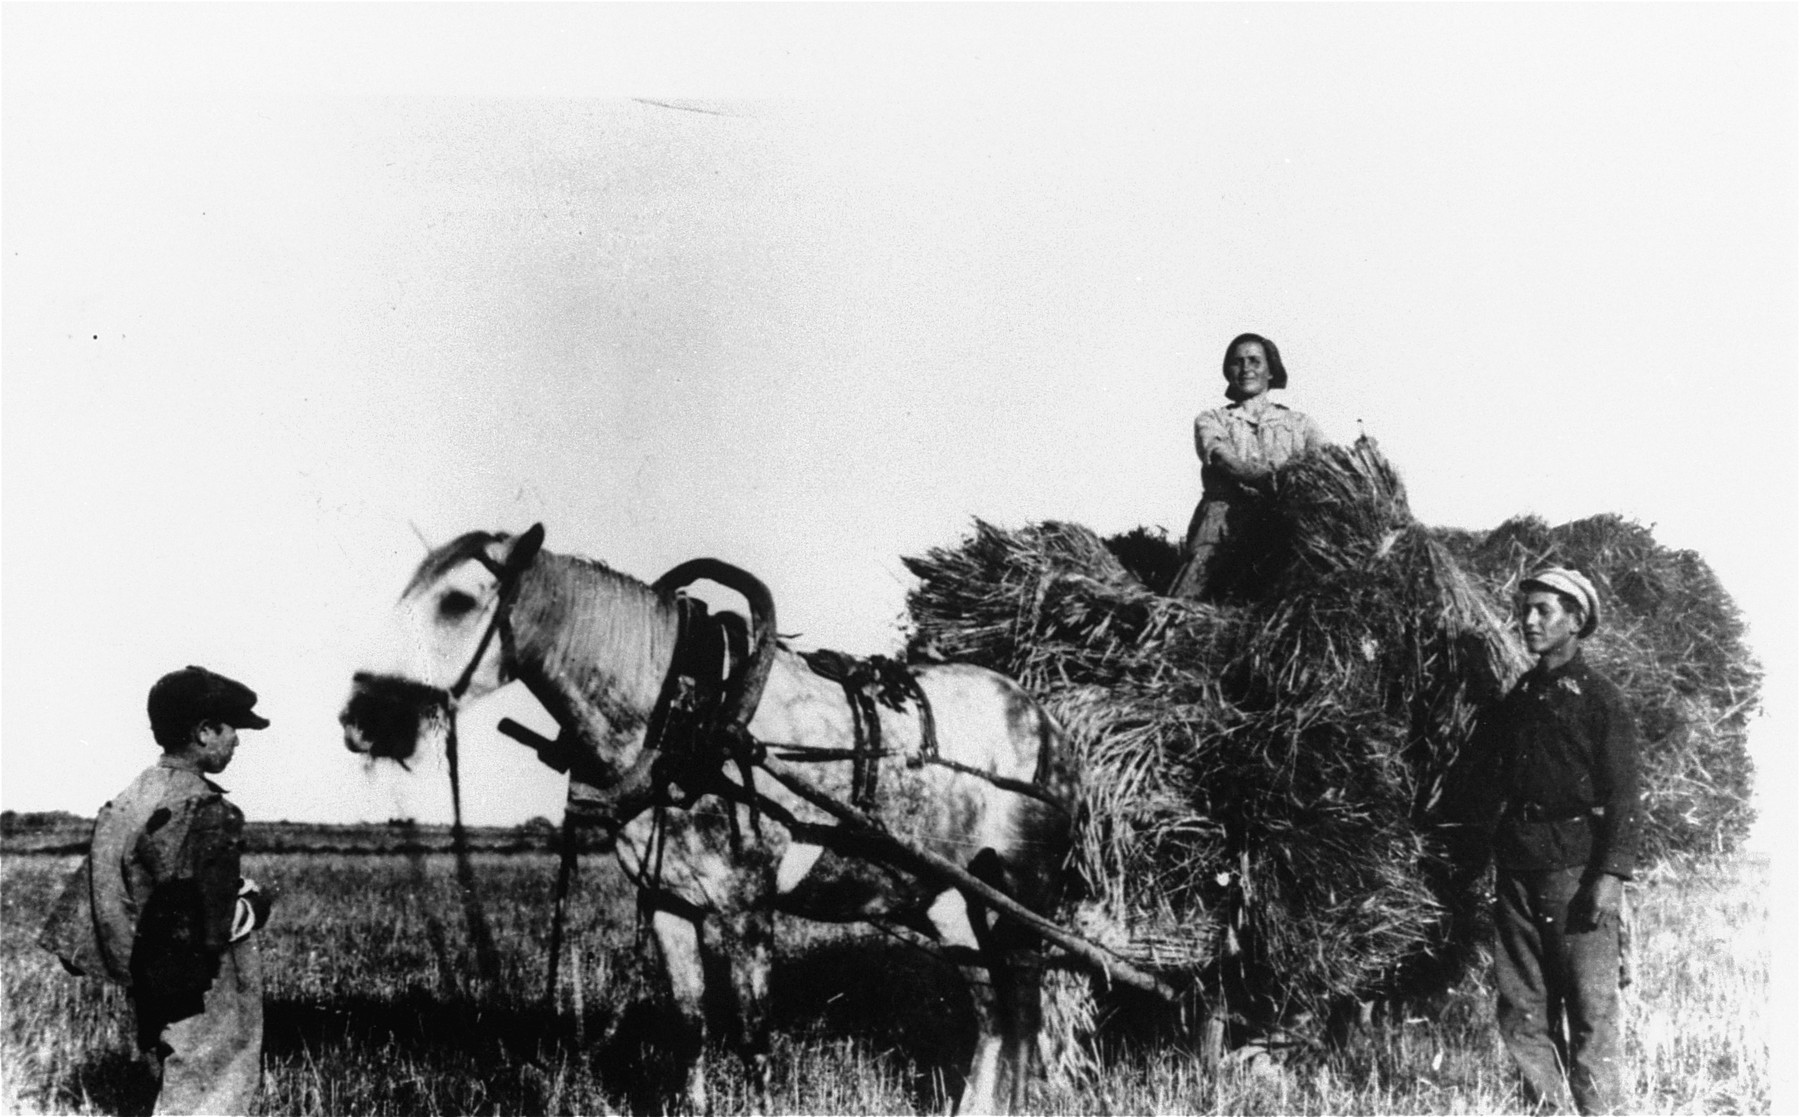 A family of Jewish farmers collects hay from the field and loads it onto their horse-drawn wagon.  Pictured are Chaim Rozenbaum (at the left), his aunt, Zippa Gorbut (on the wagon), and her son Avraham.